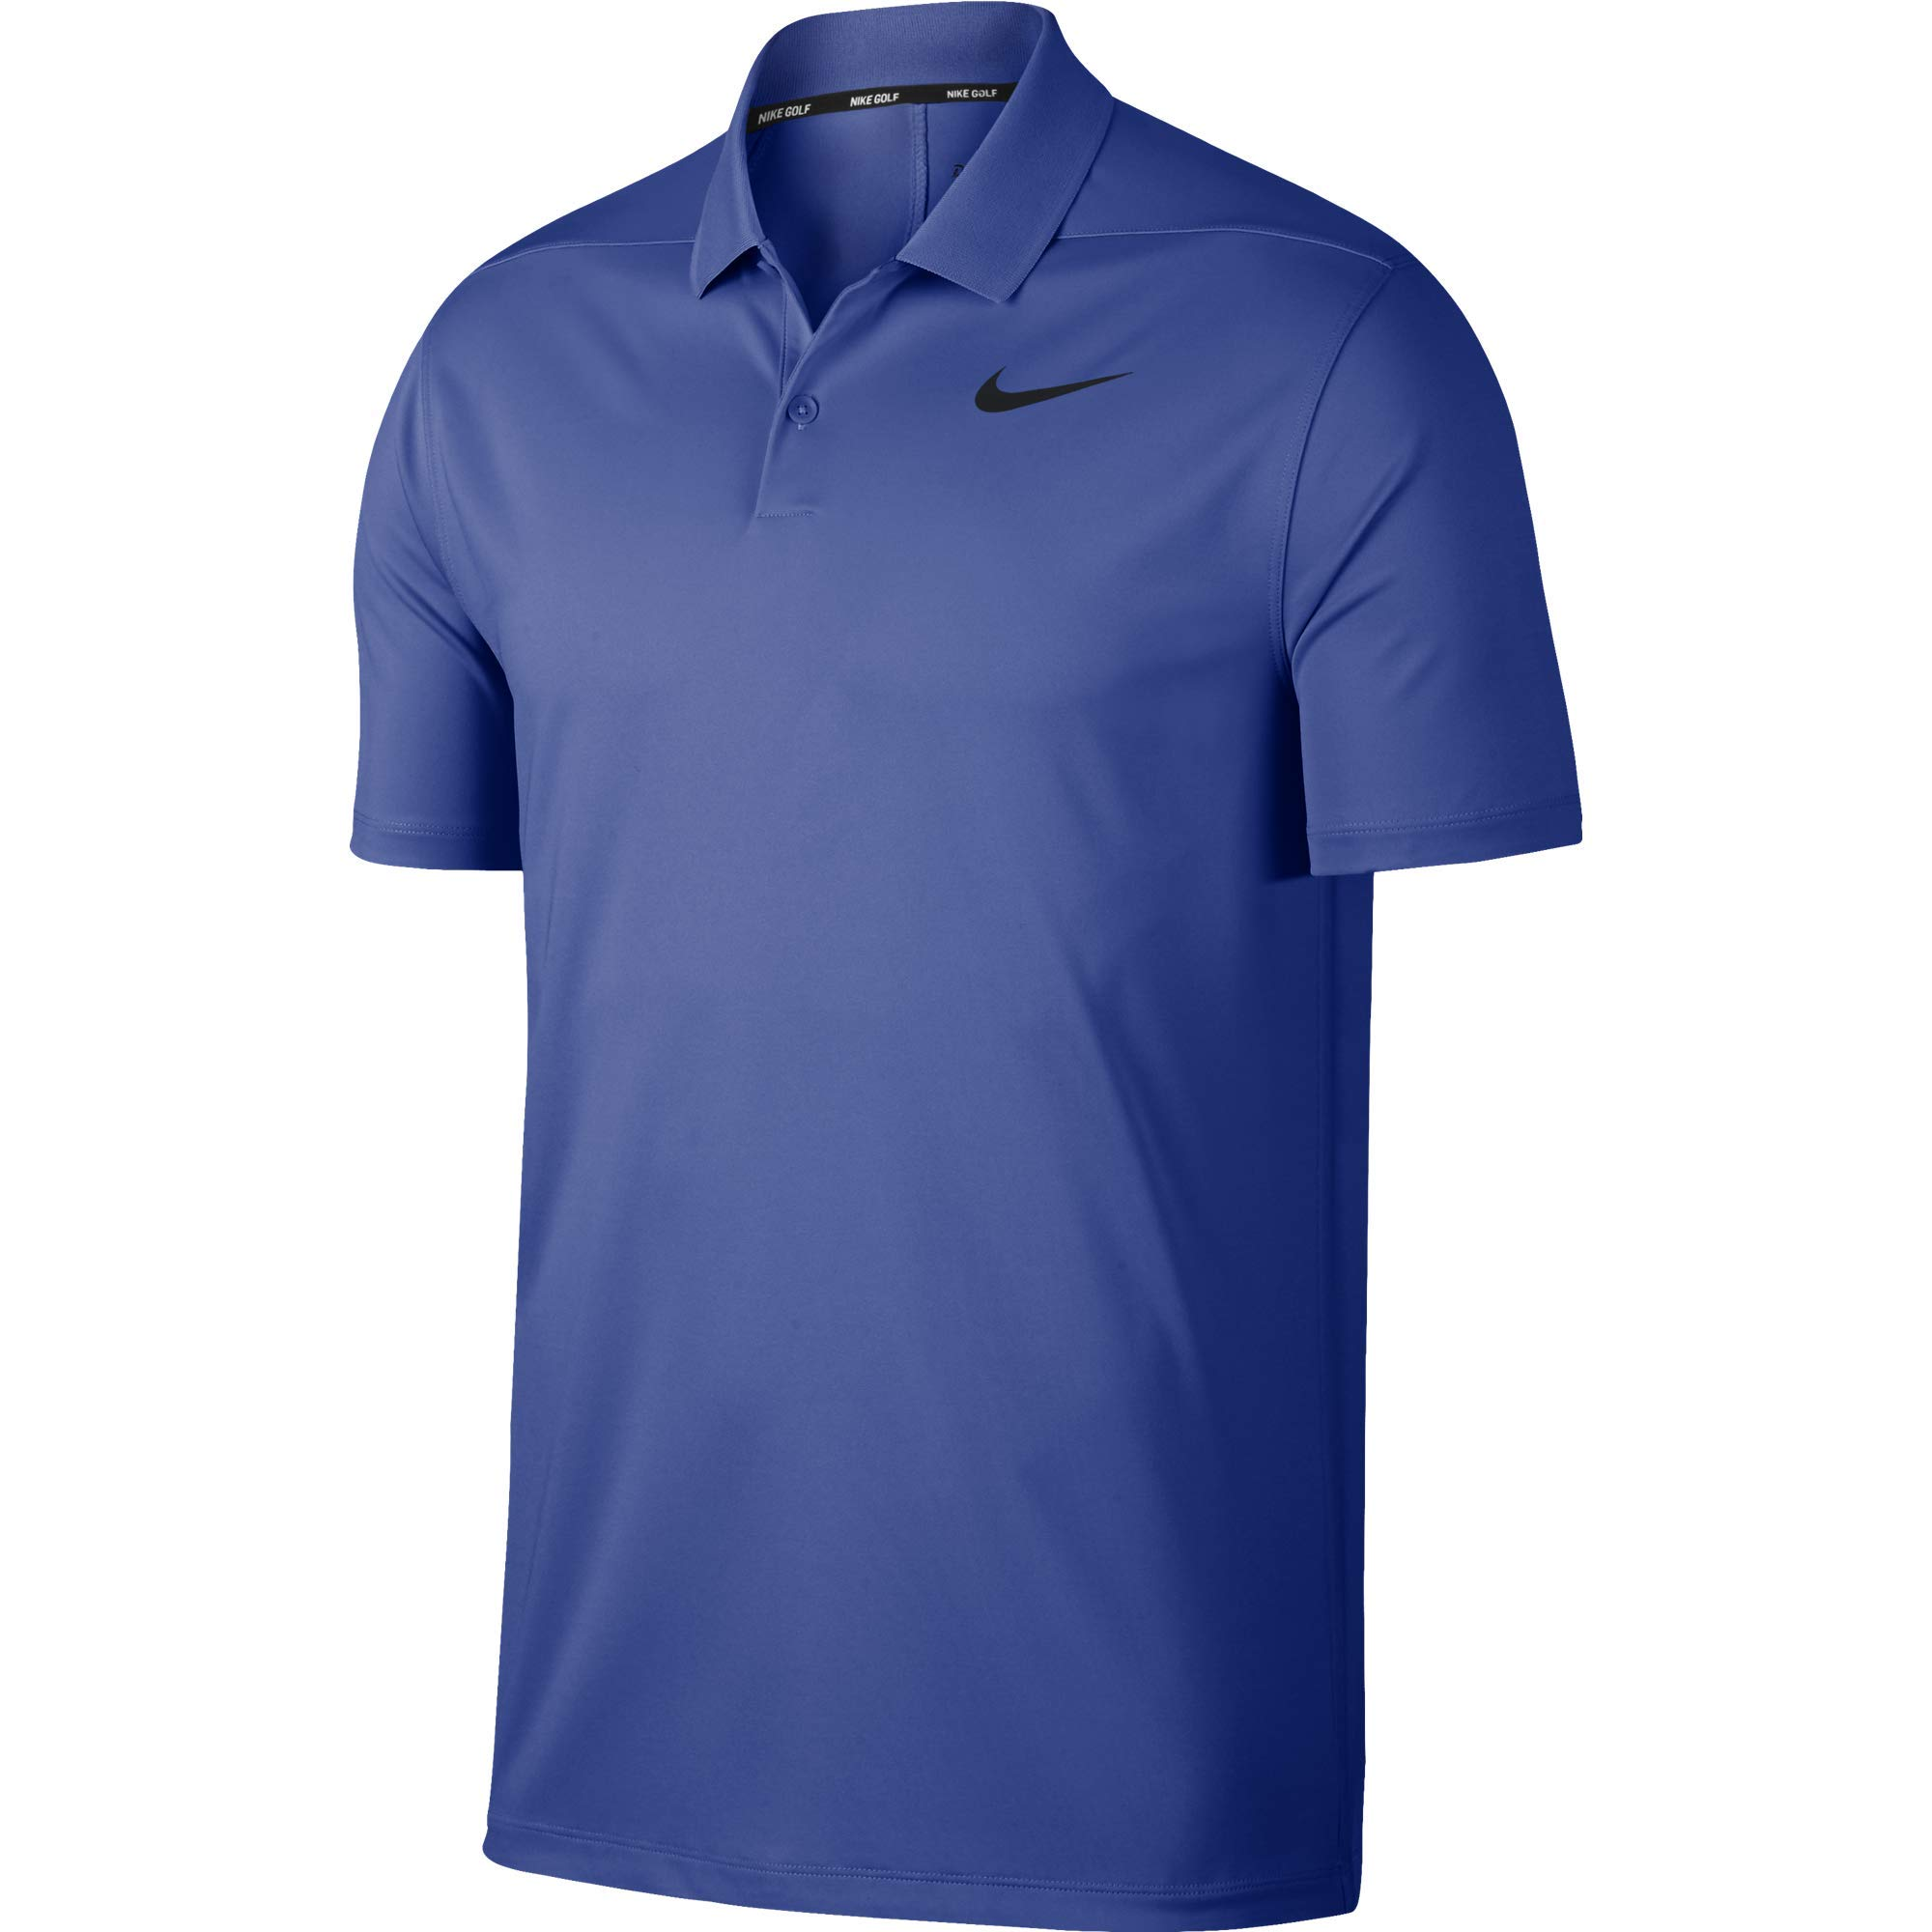 Nike Men's Dry Victory Polo Solid Left Chest, Game Royal/Black, X-Large by Nike